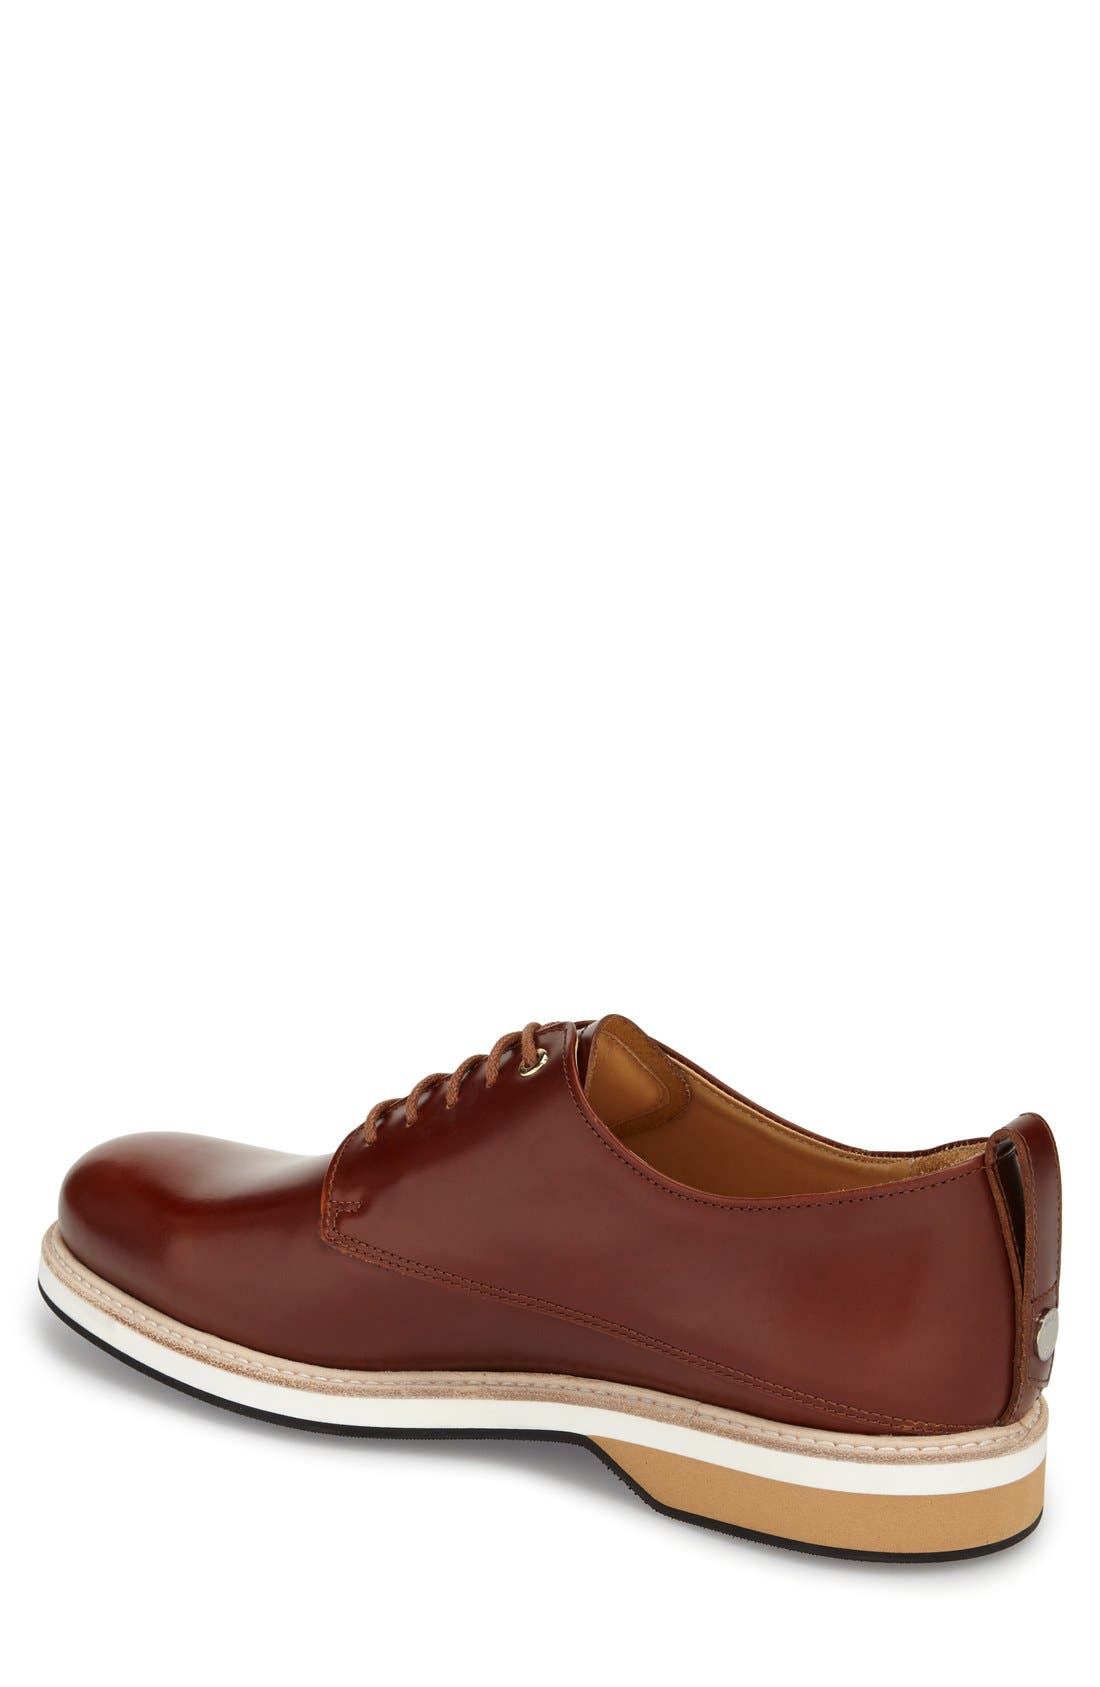 'Montoro' Derby,                             Alternate thumbnail 2, color,                             Cognac Leather